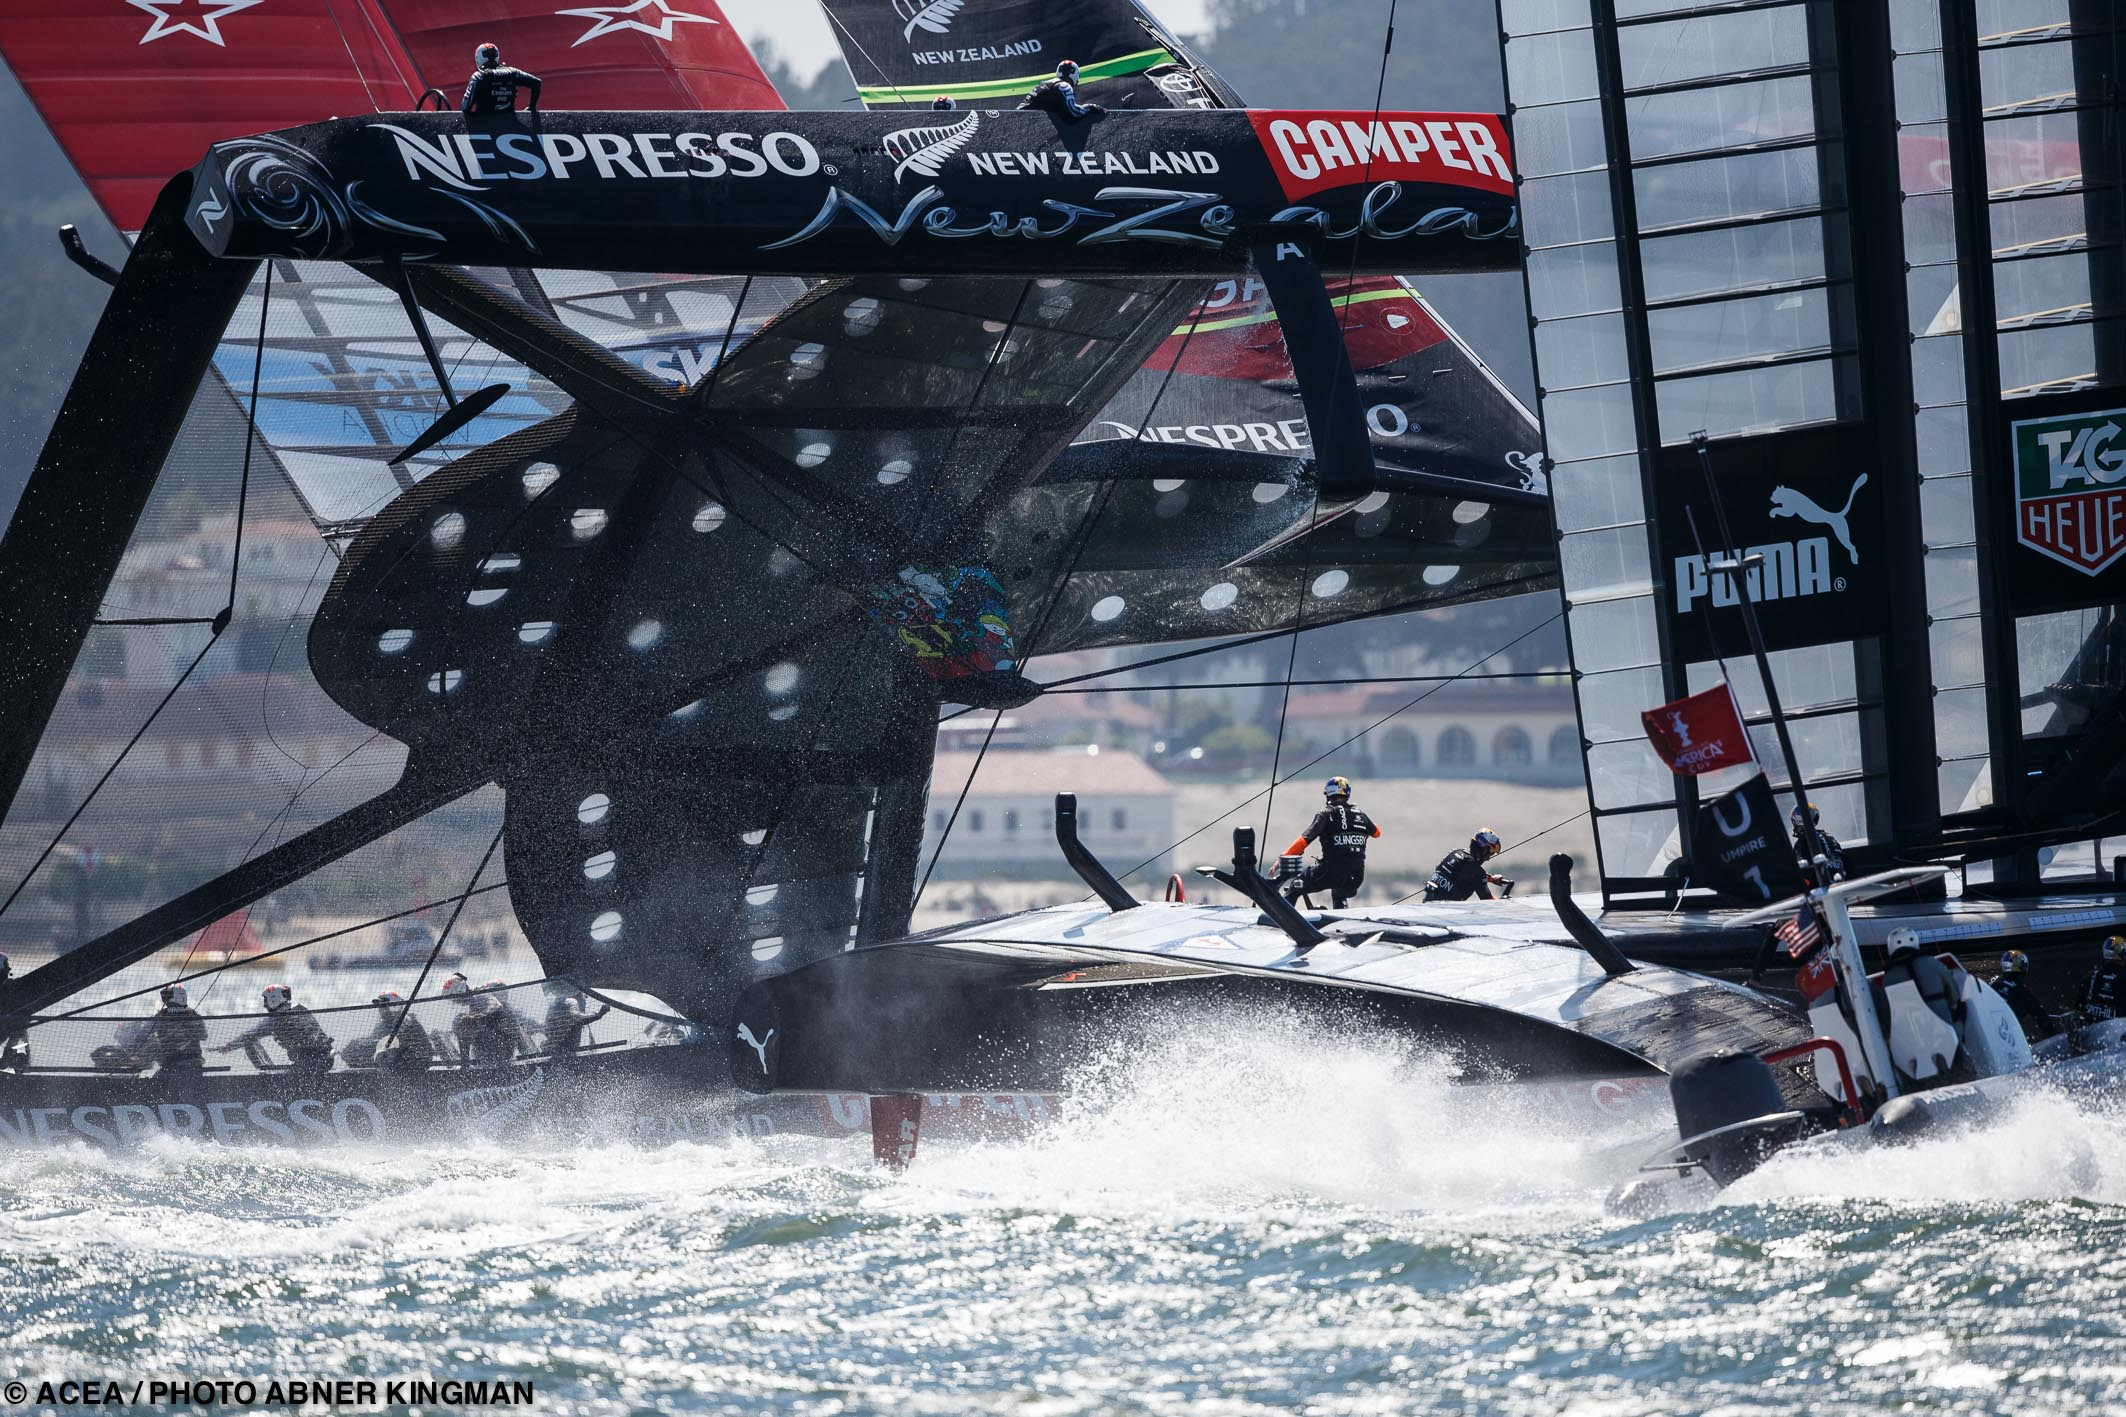 14/09/2013 - San Francisco (USA CA) - 34th America's Cup -